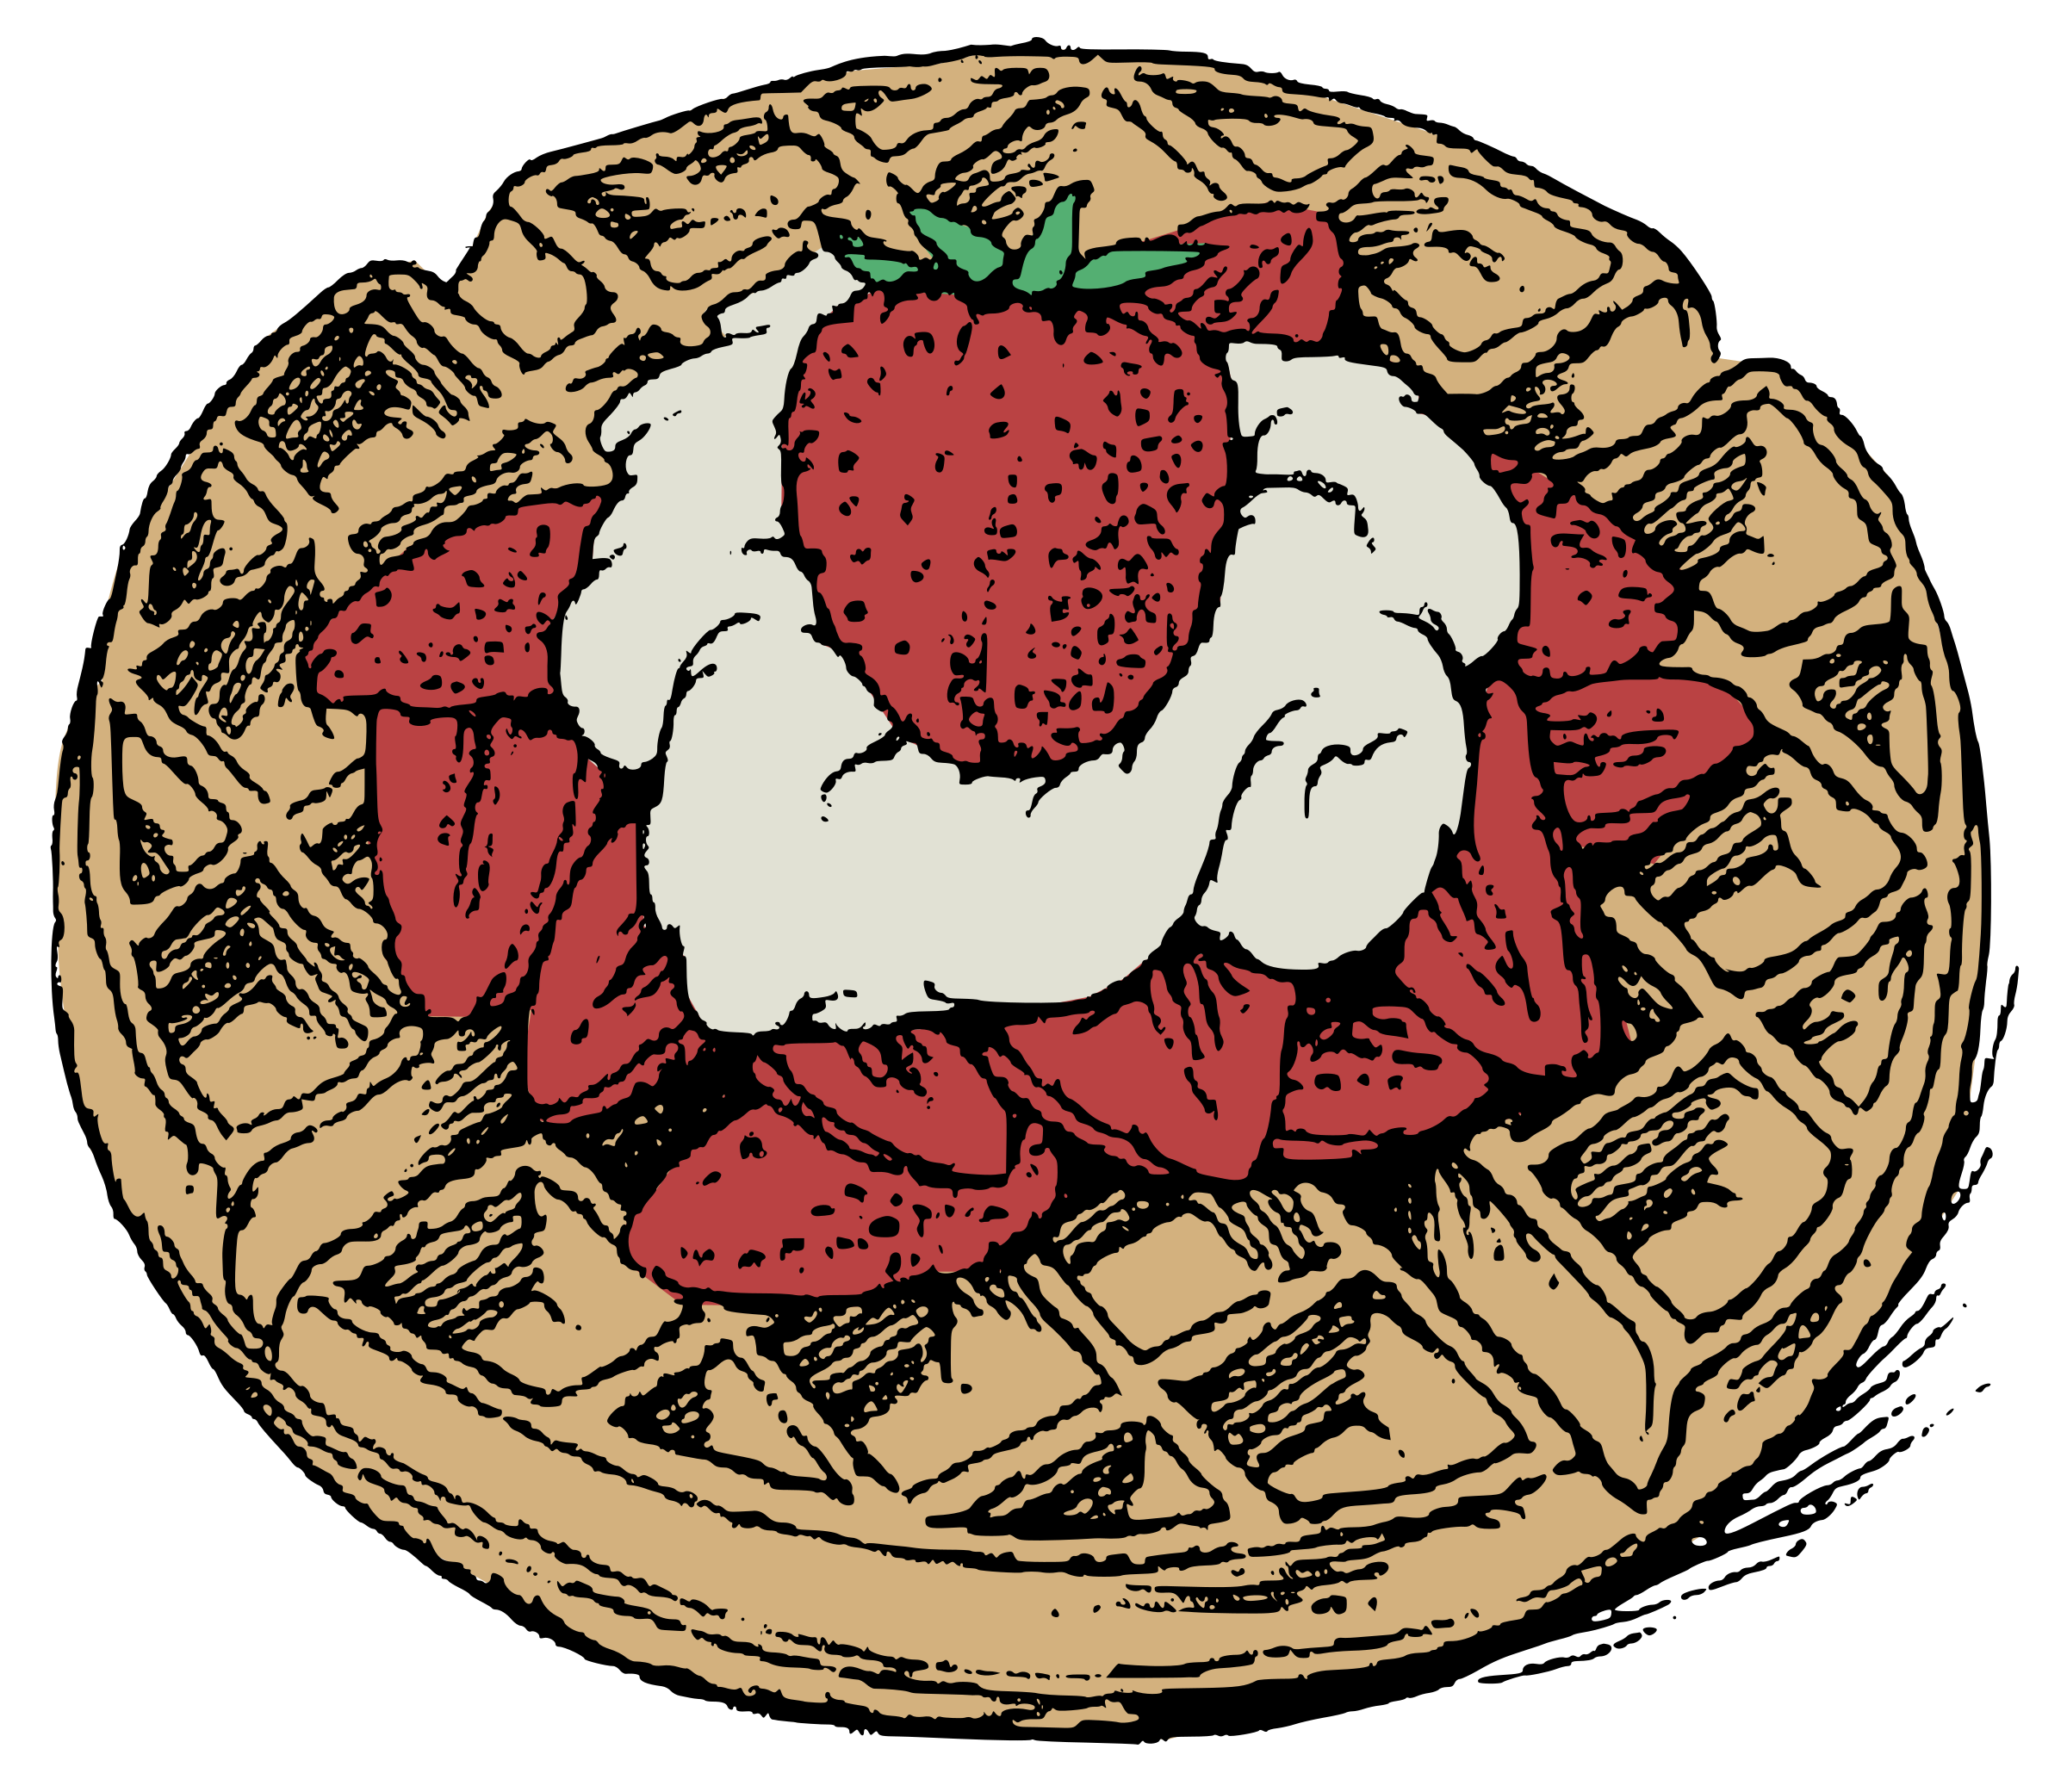 graphic royalty free download Waffles clipart. Belgian colour big image